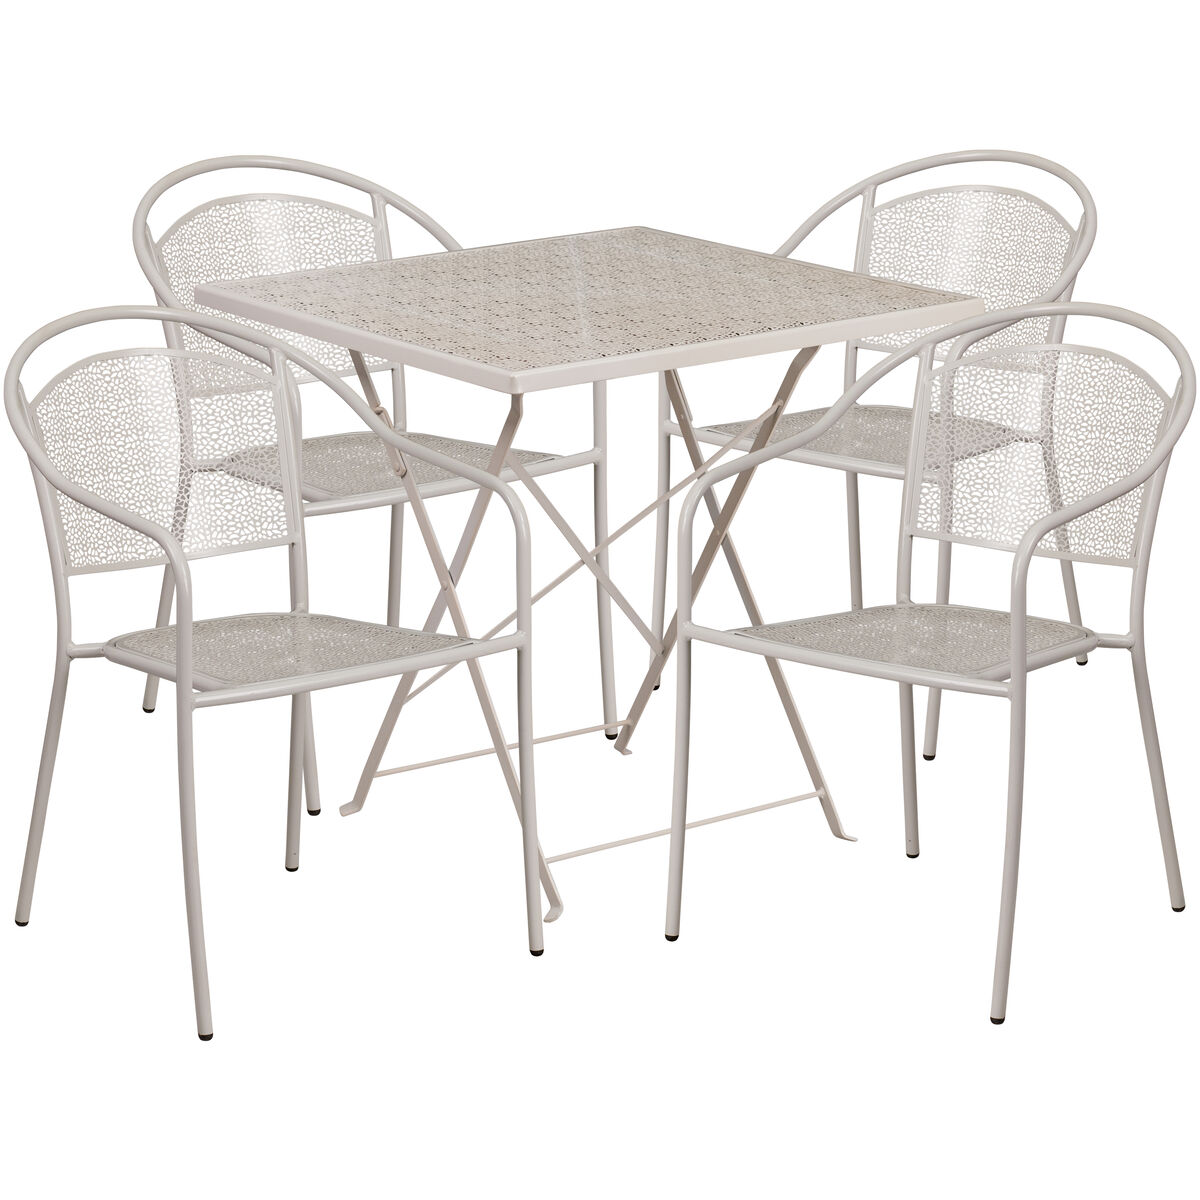 4 Patio Table Sets